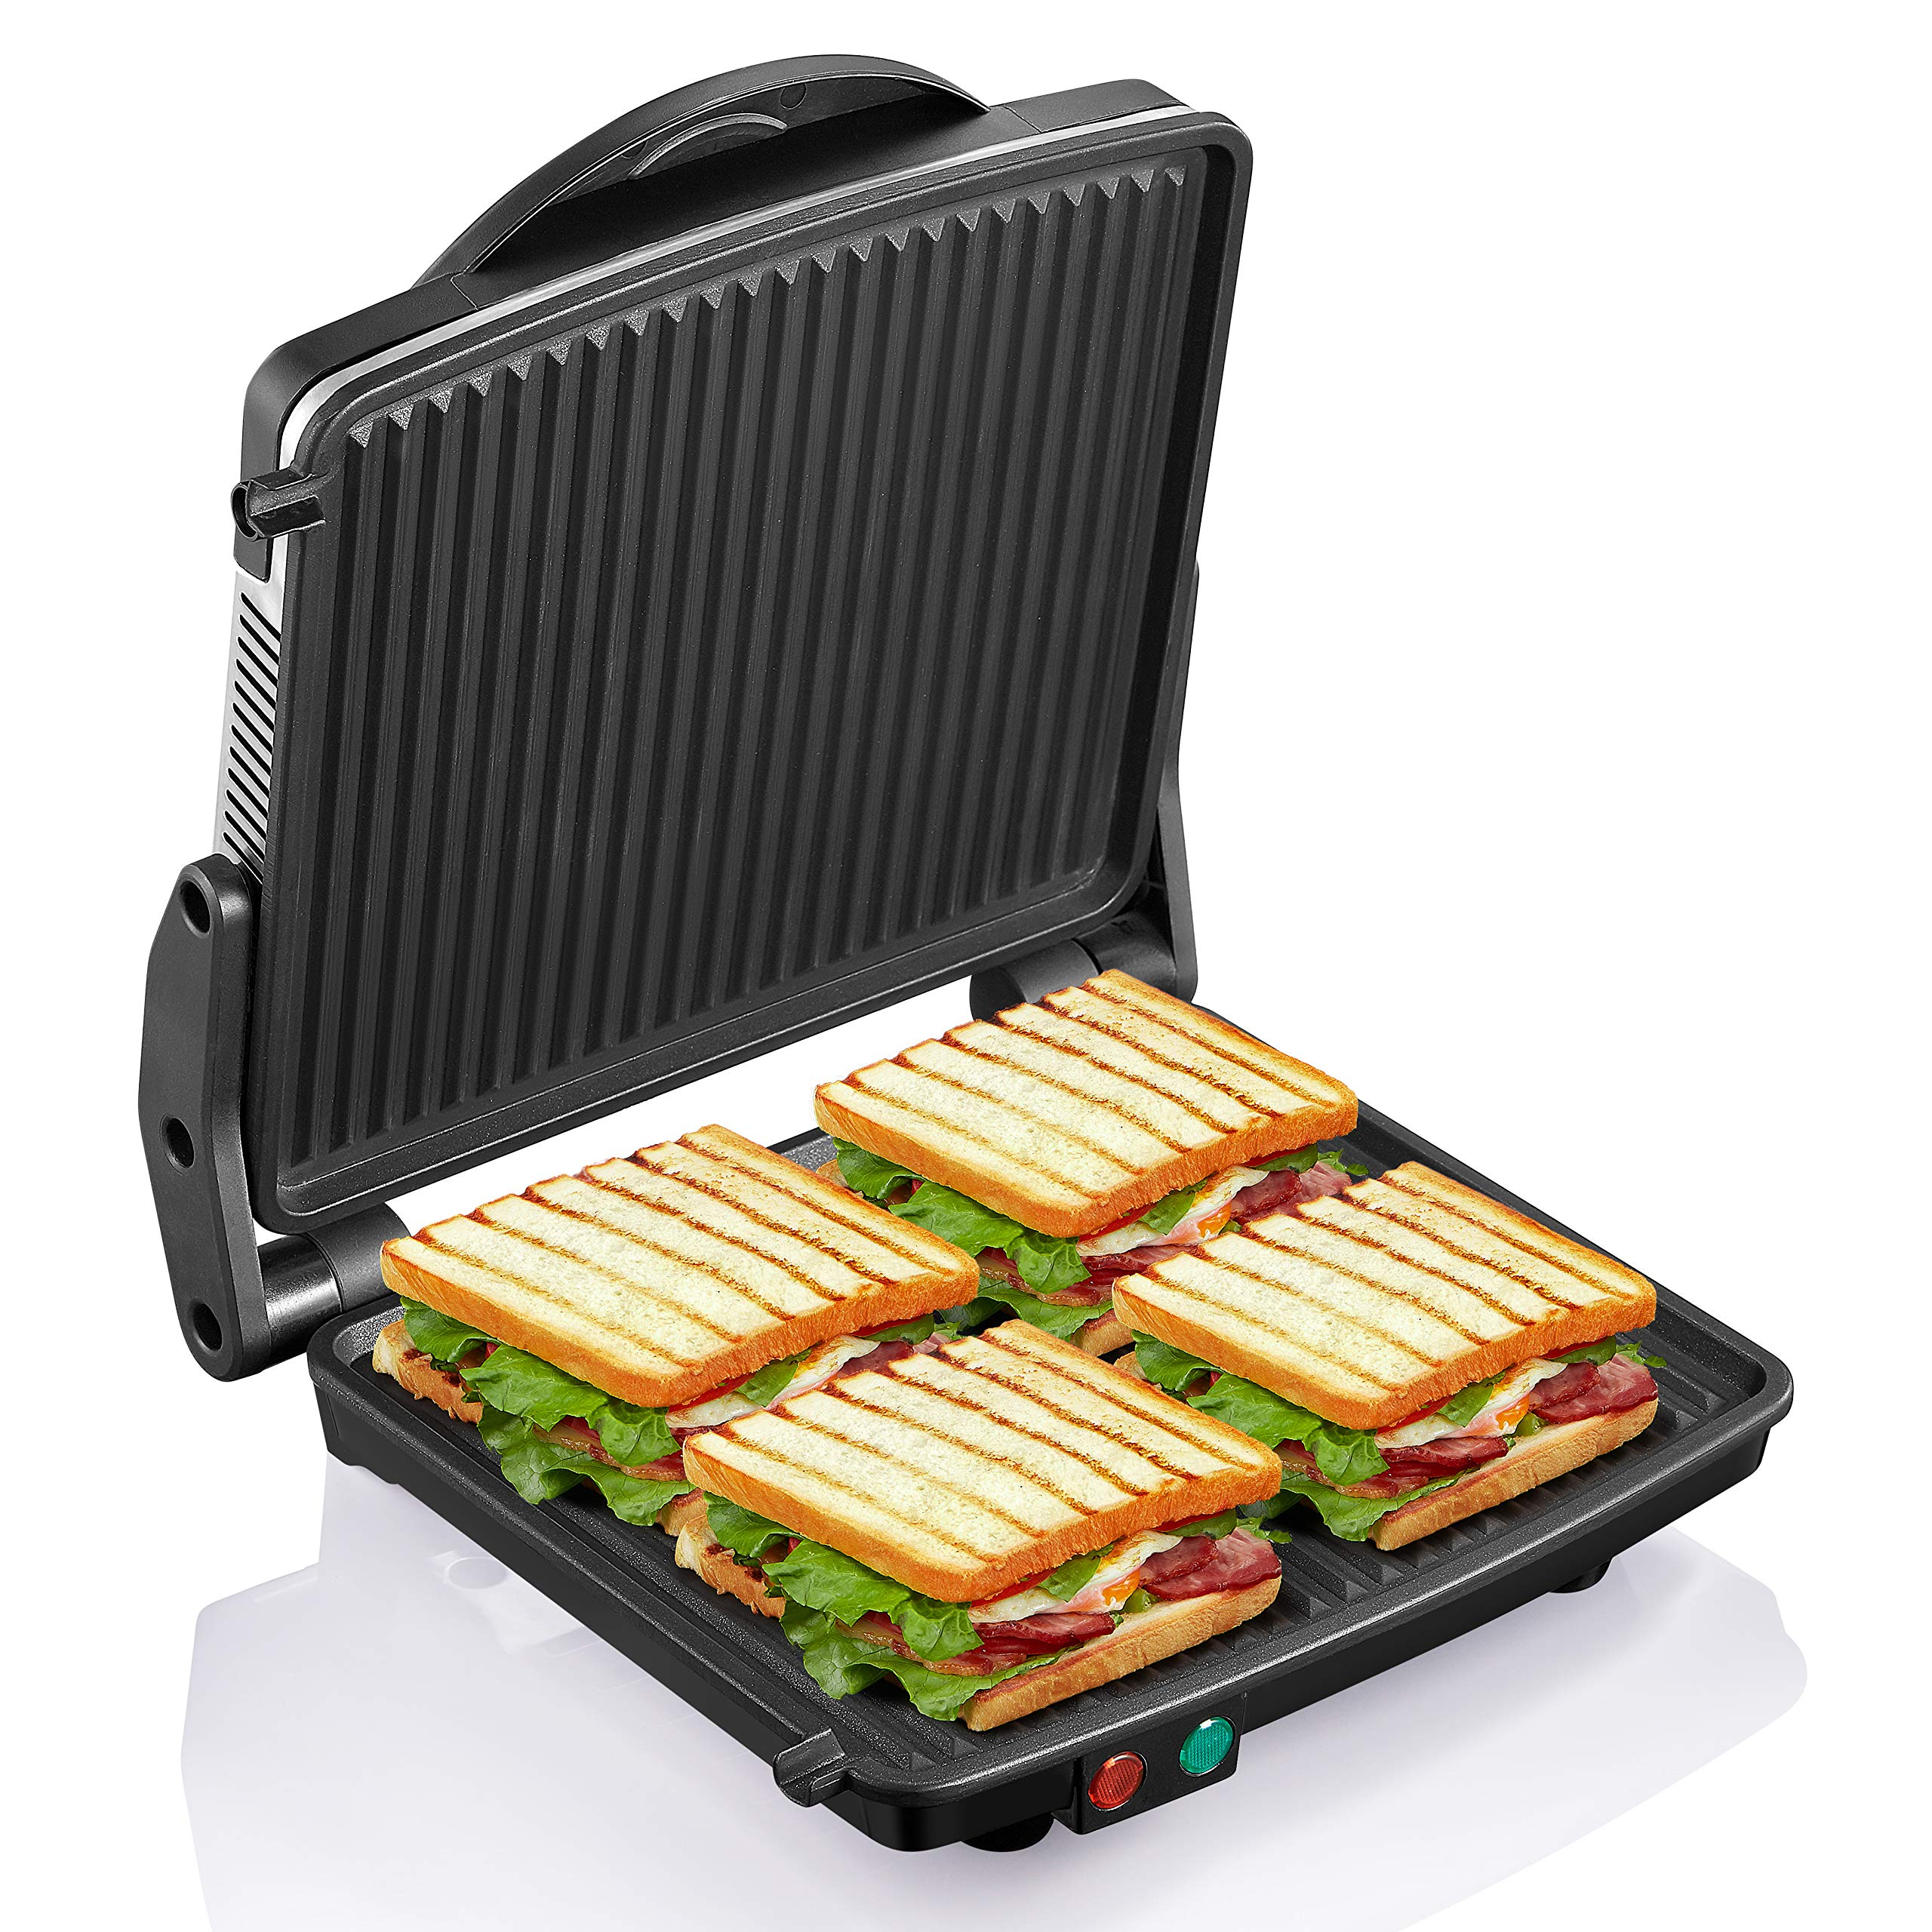 Panini Press Grill, Yabano Gourmet Sandwich Maker Non-Stick Coated Plates 11'' x 9.8'', Opens 180 Degrees to Fit Any Type or Size of Food, Stainless Steel Surface and Removable Drip Tray, 4 Slice by Yabano